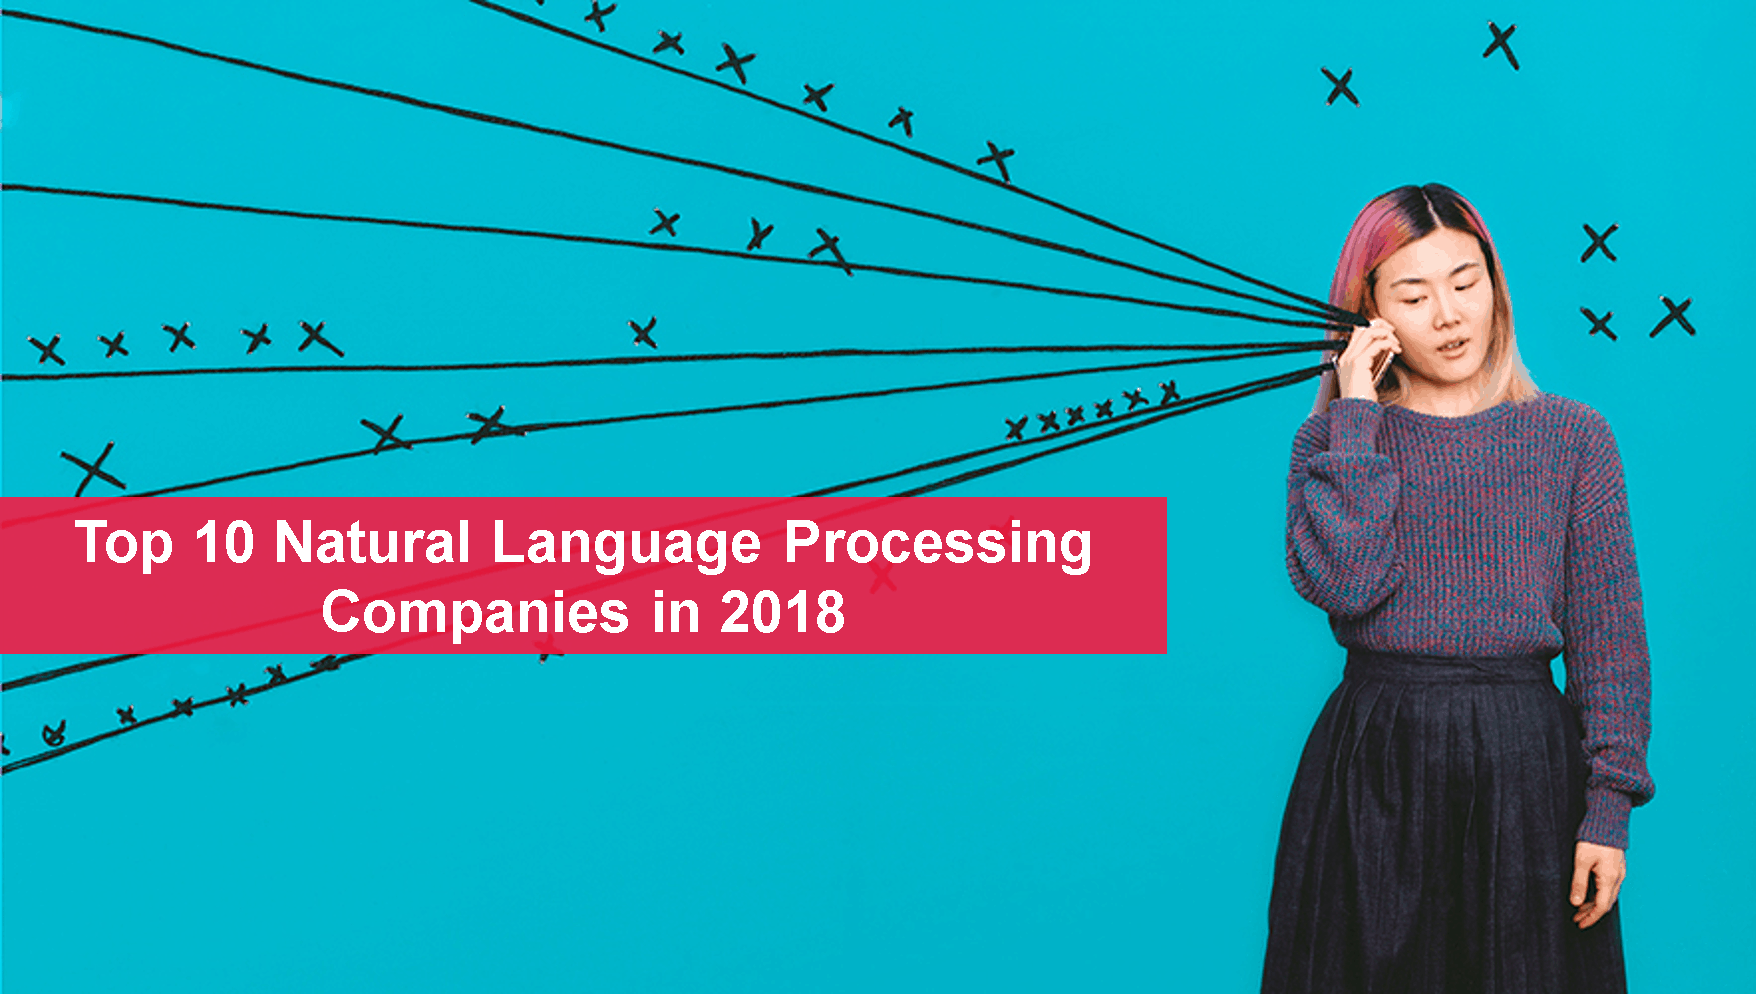 Top 10 Natural Language Processing Companies in 2018